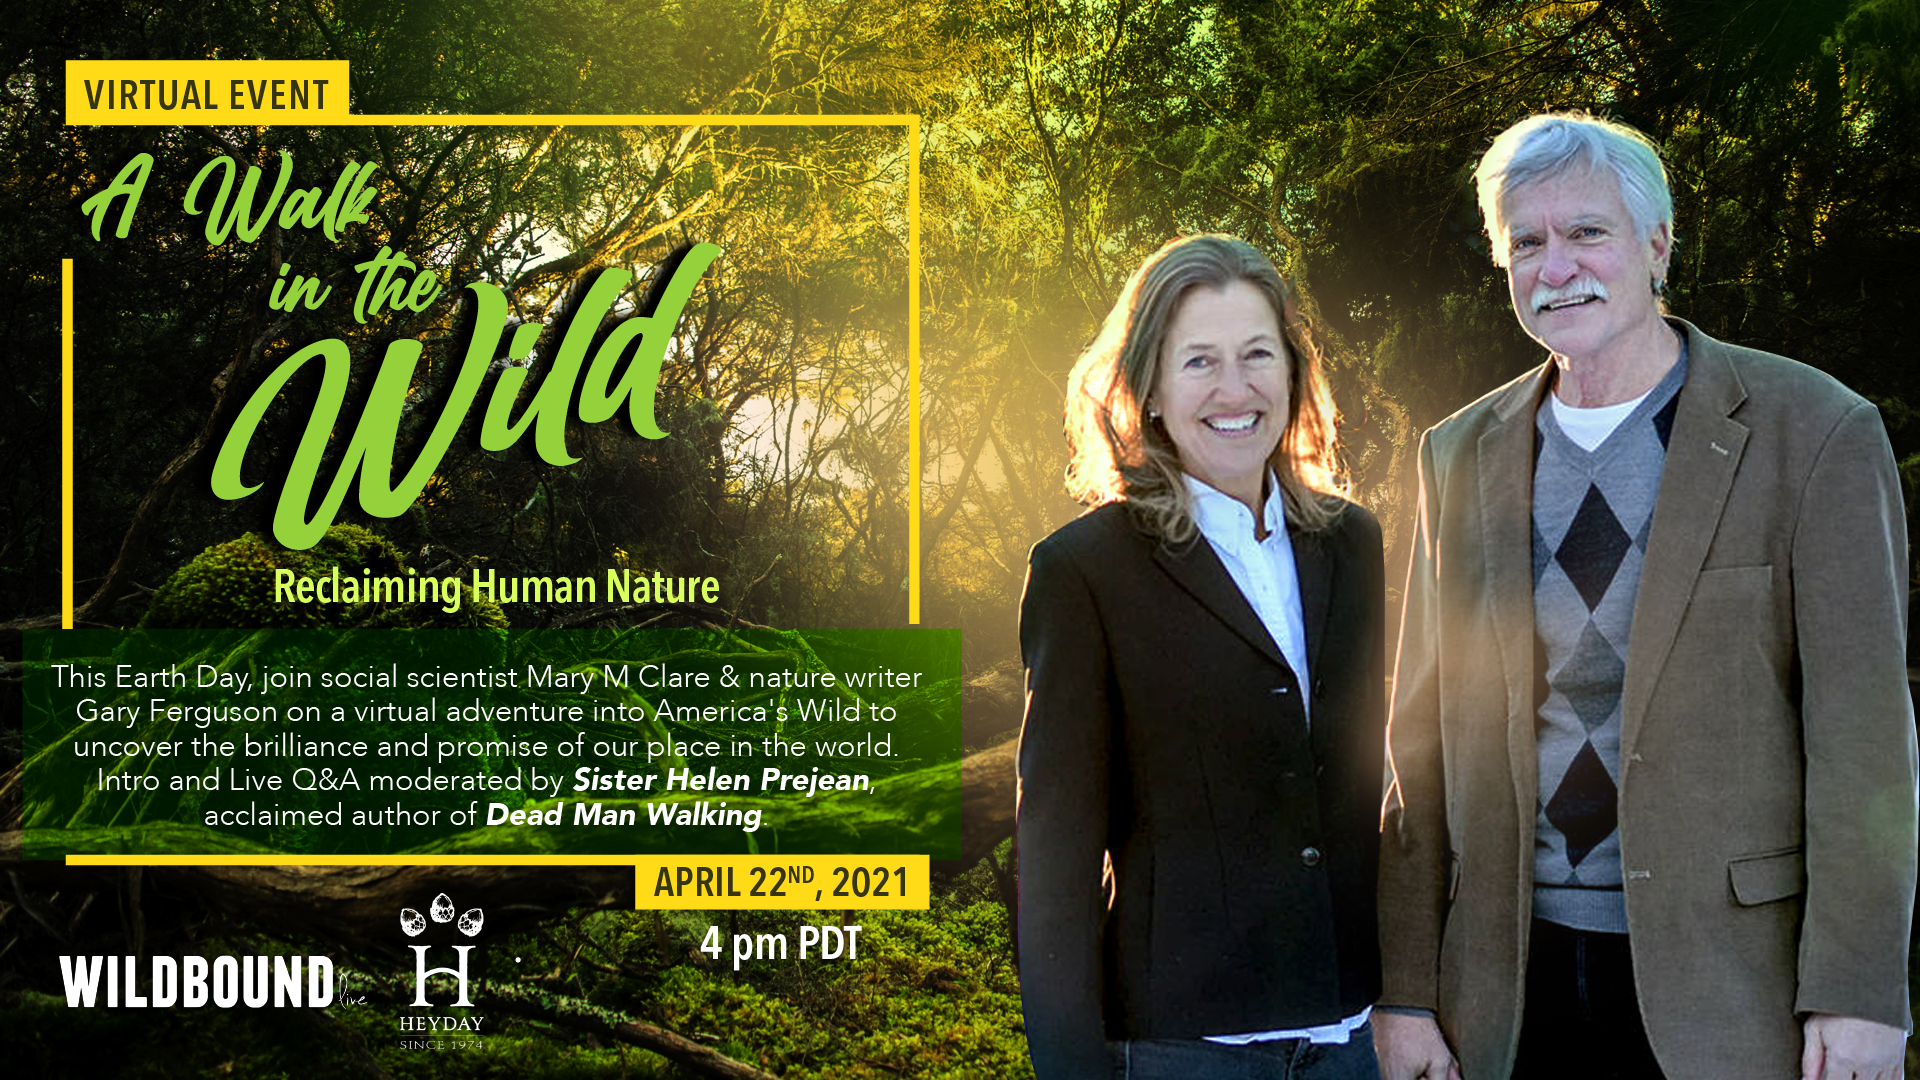 Walk in the Wild: Reclaiming Human Nature